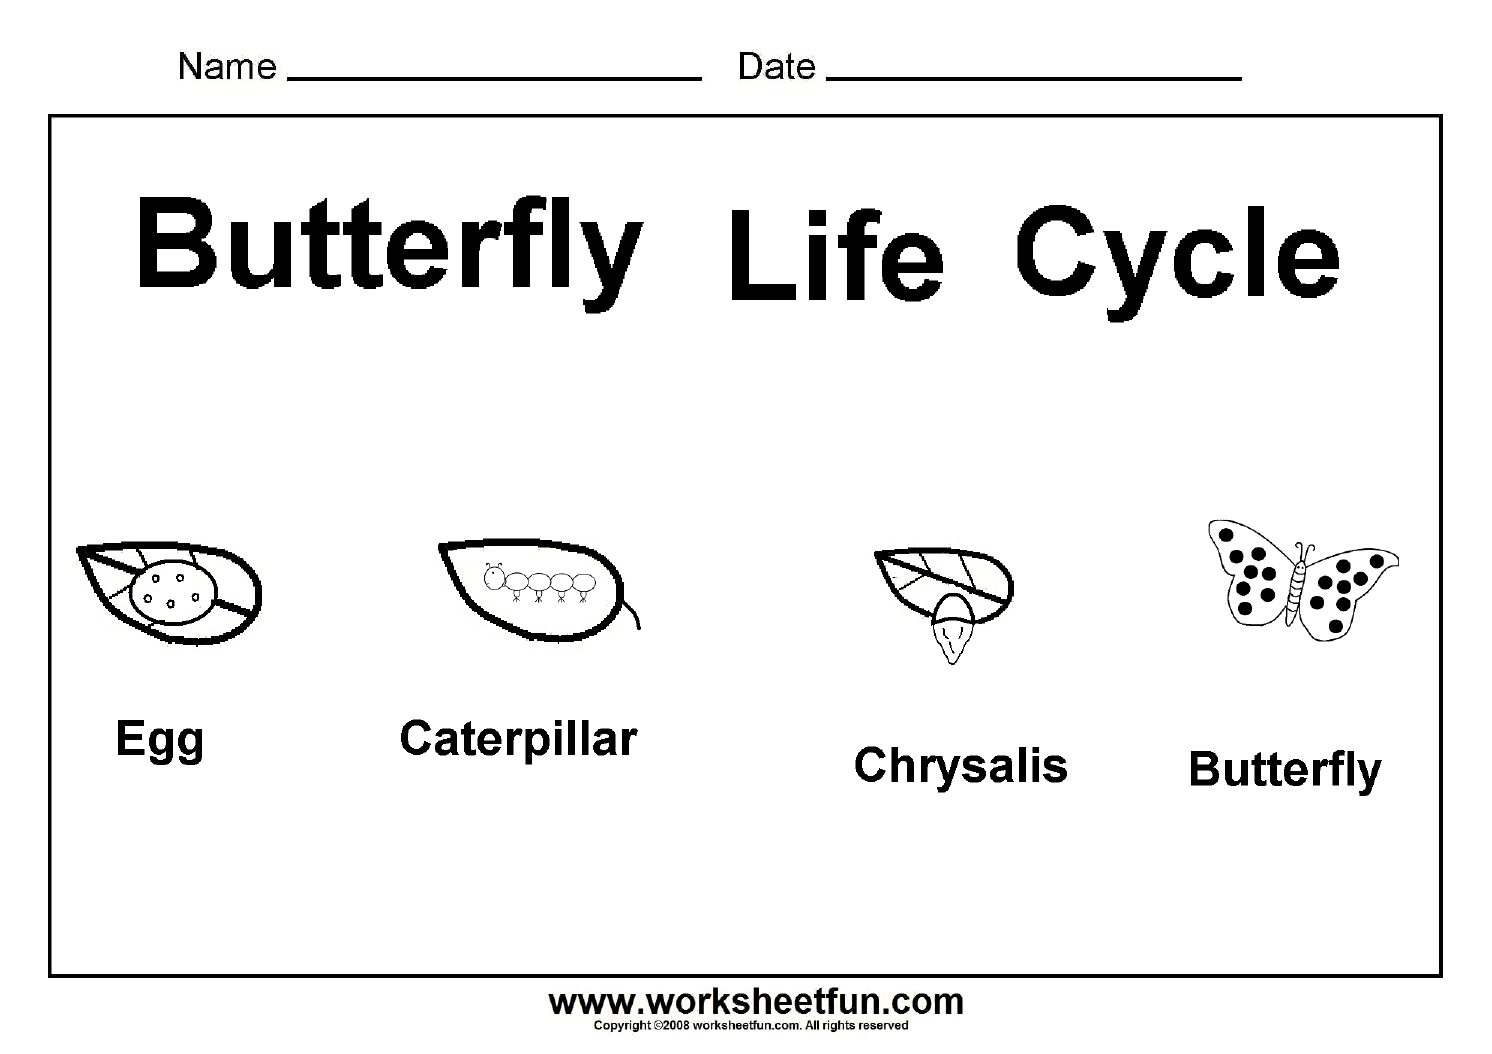 Worksheet : Butterfly Life Cycle One Free Printable Science - Free Printable Butterfly Worksheets